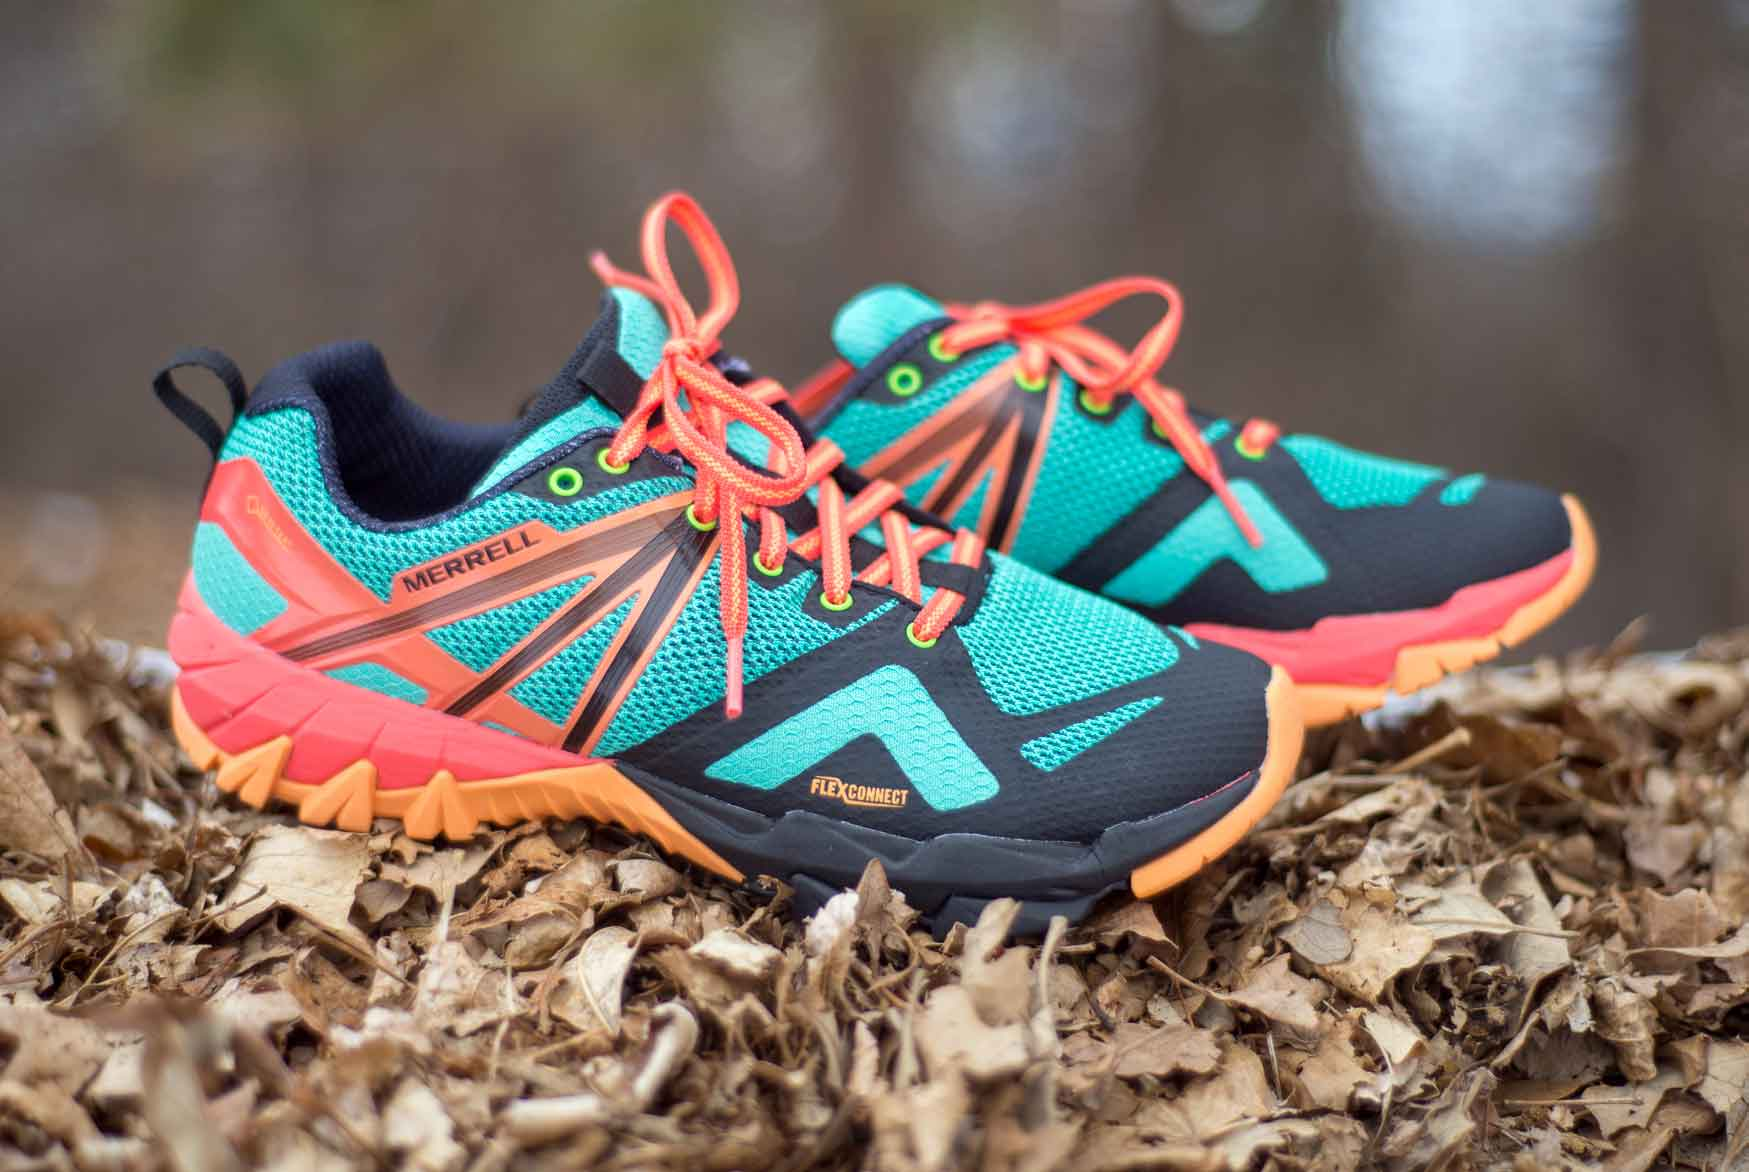 fc8a24fa New Breed: Merrell MQM FLEX 'Hybrid' Trail Shoe | GearJunkie